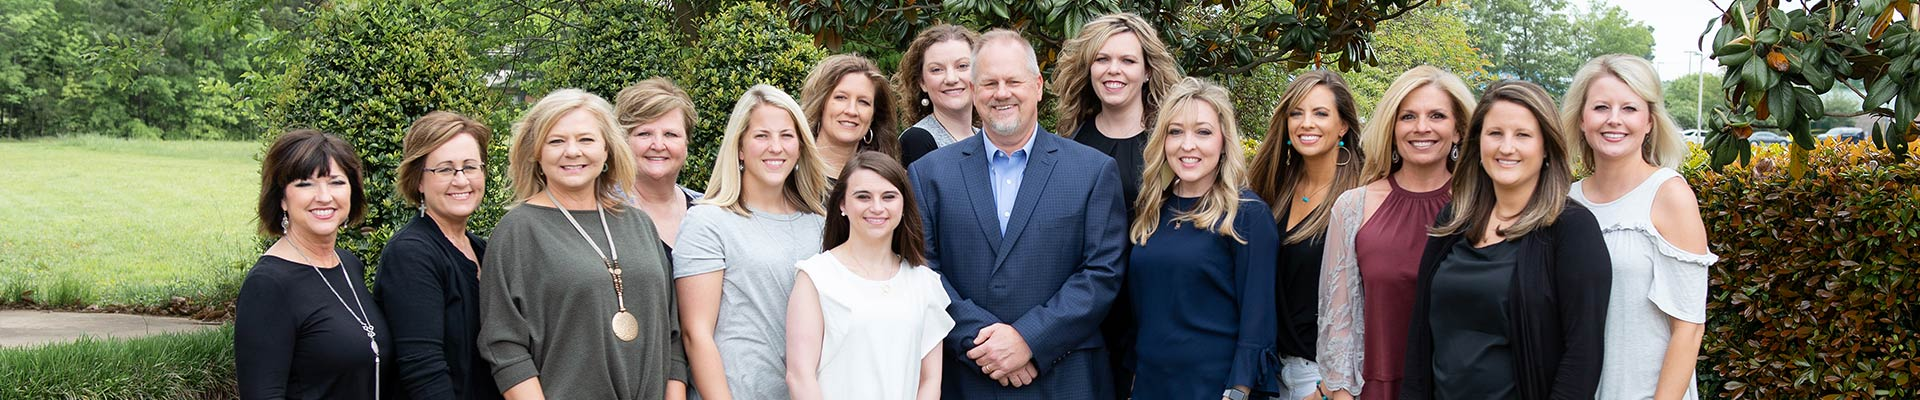 Group-Staff-Photo-Orthodontist-Lew-B-Sample-Decatur-Hartselle-AL